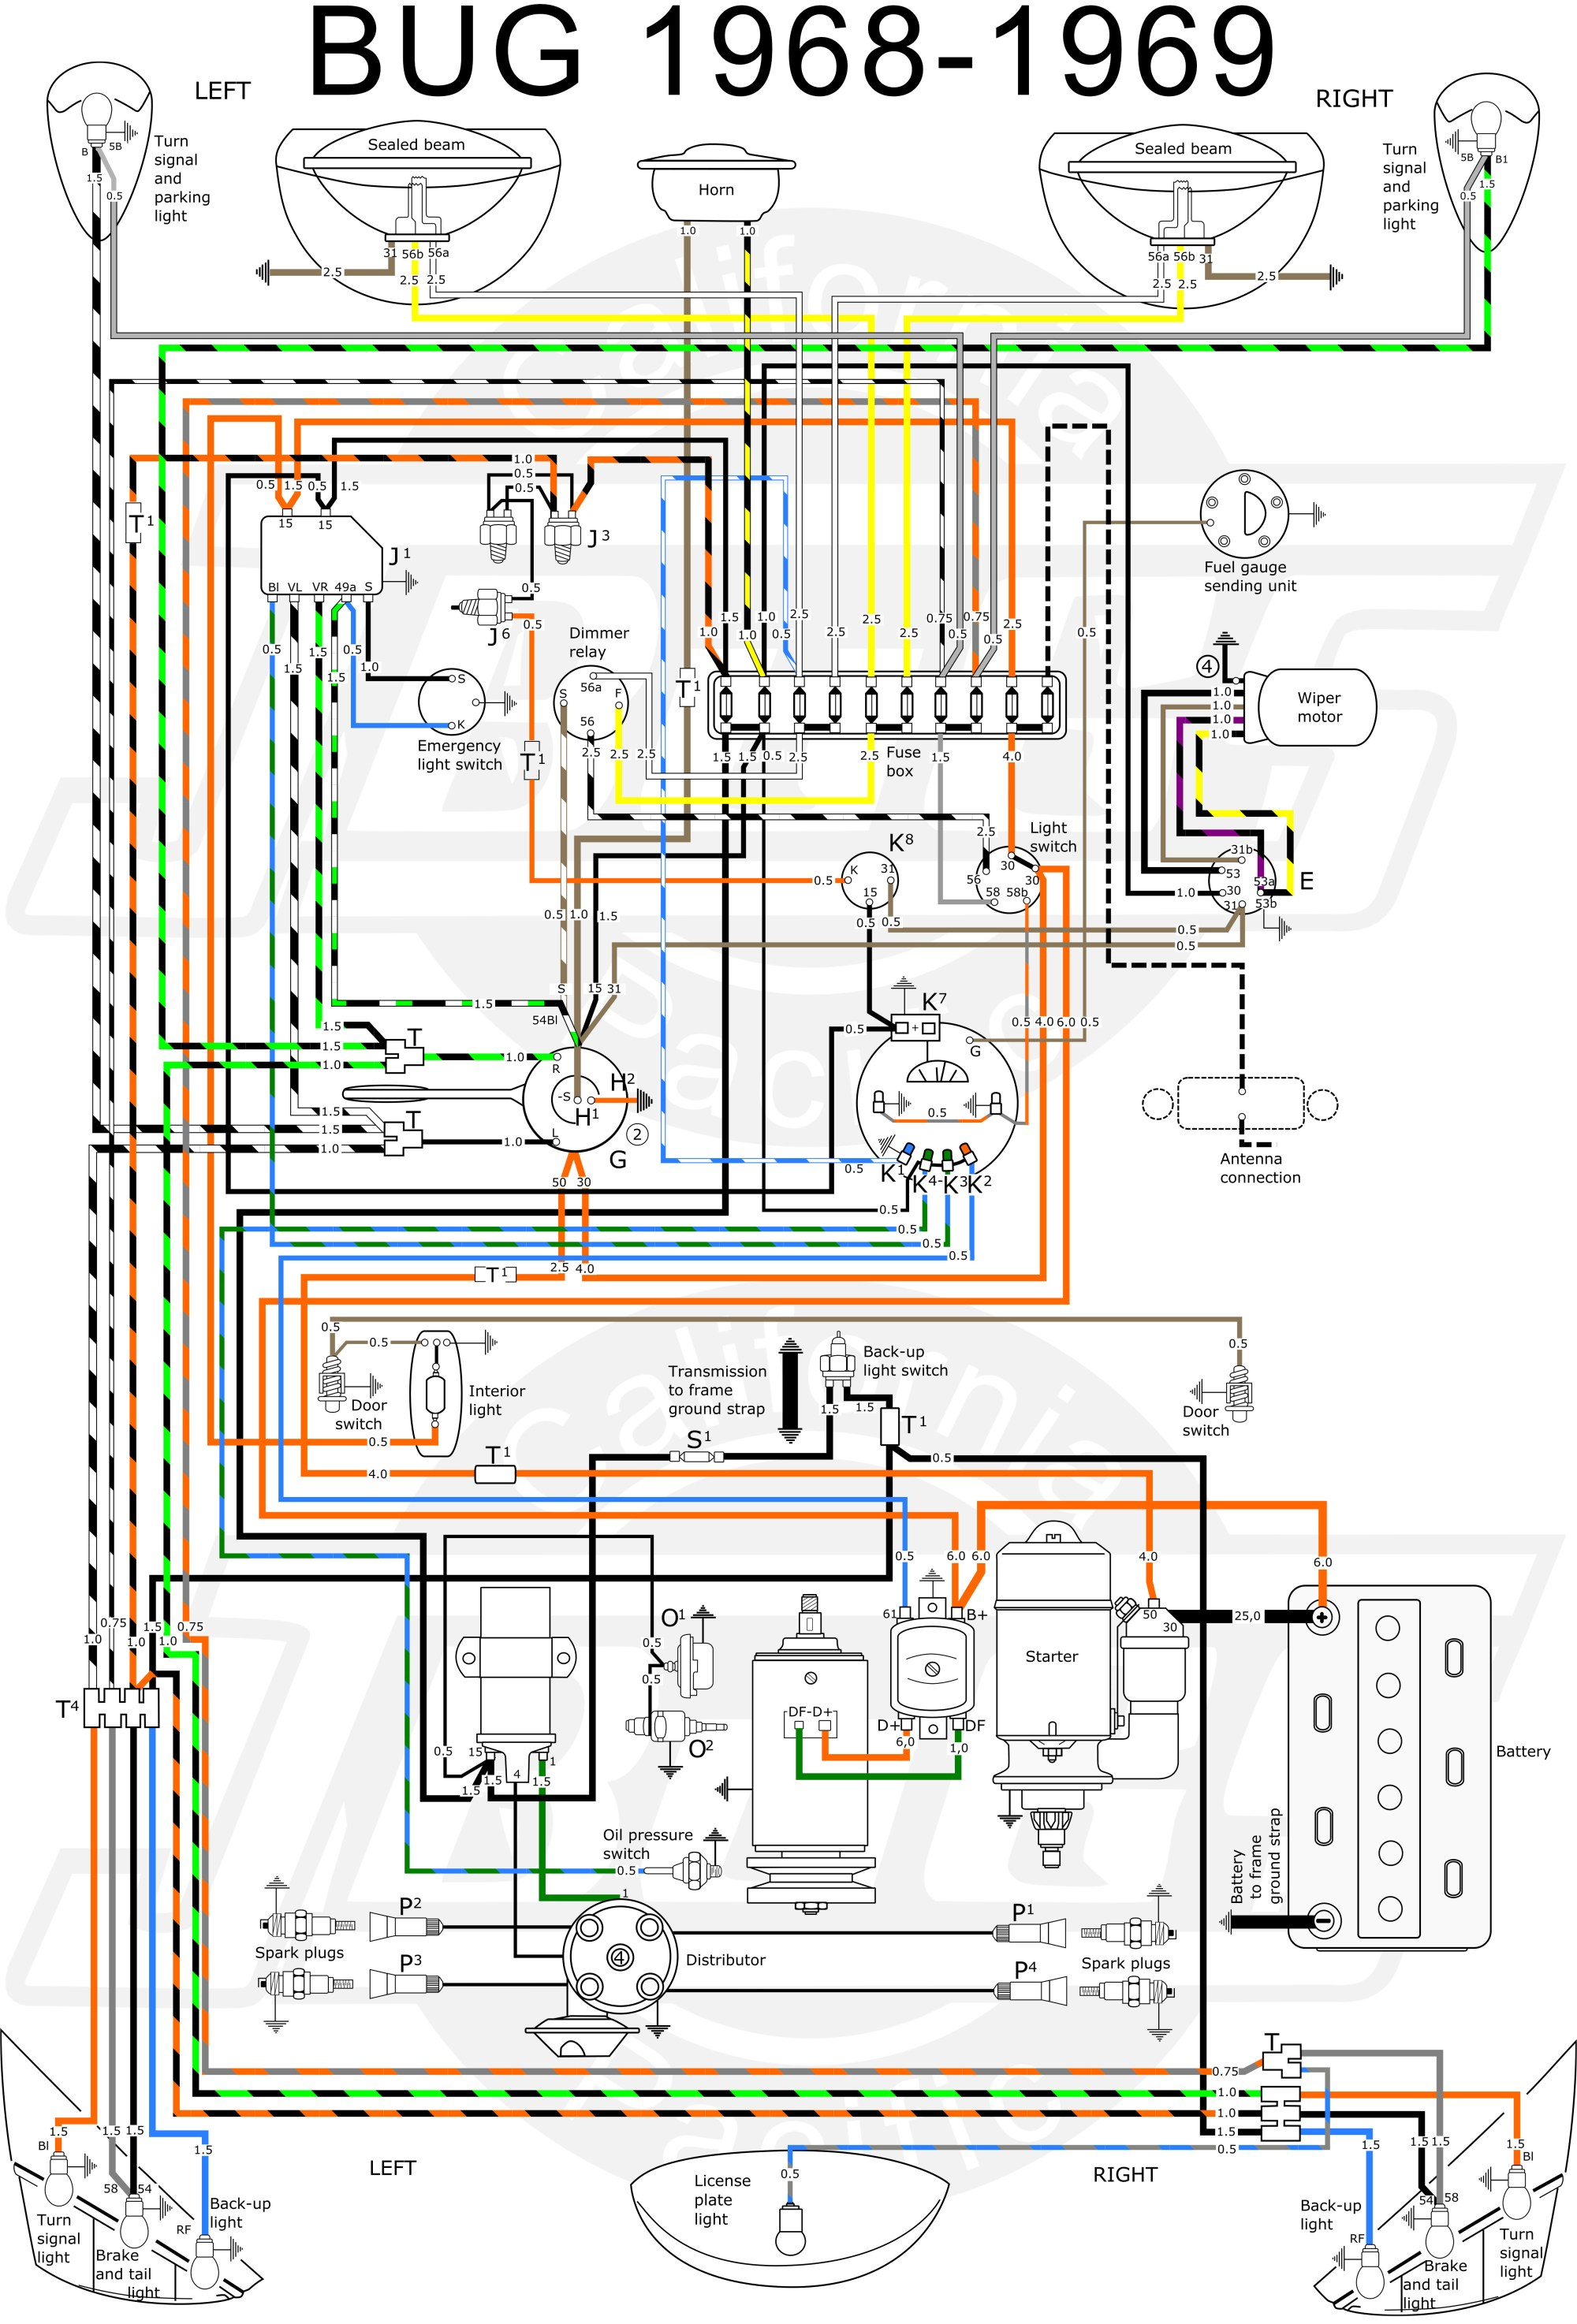 hight resolution of toshiba soft start wiring diagrams wiring librarywiring toshiba diagram 1004flf3bshd electrical diagram schematics rh zavoral genealogy